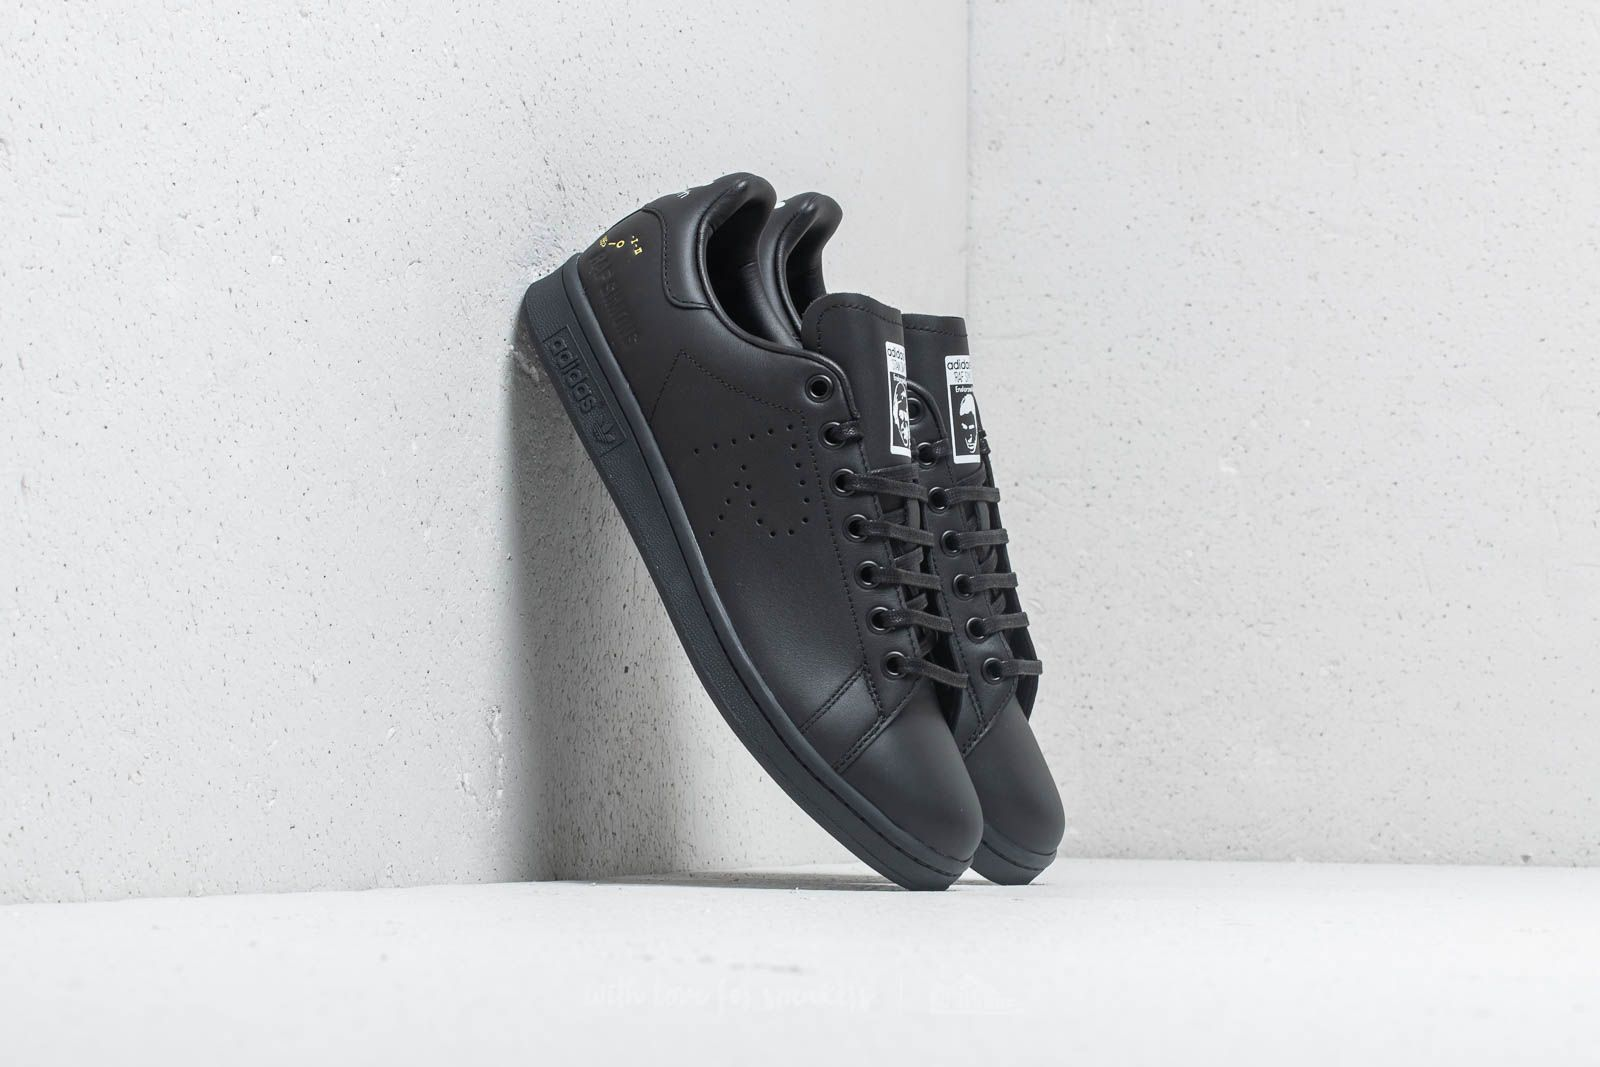 52a1cf99cb2b adidas x Raf Simons Stan Smith Core Black  Dgh Solid Grey  Cream White at